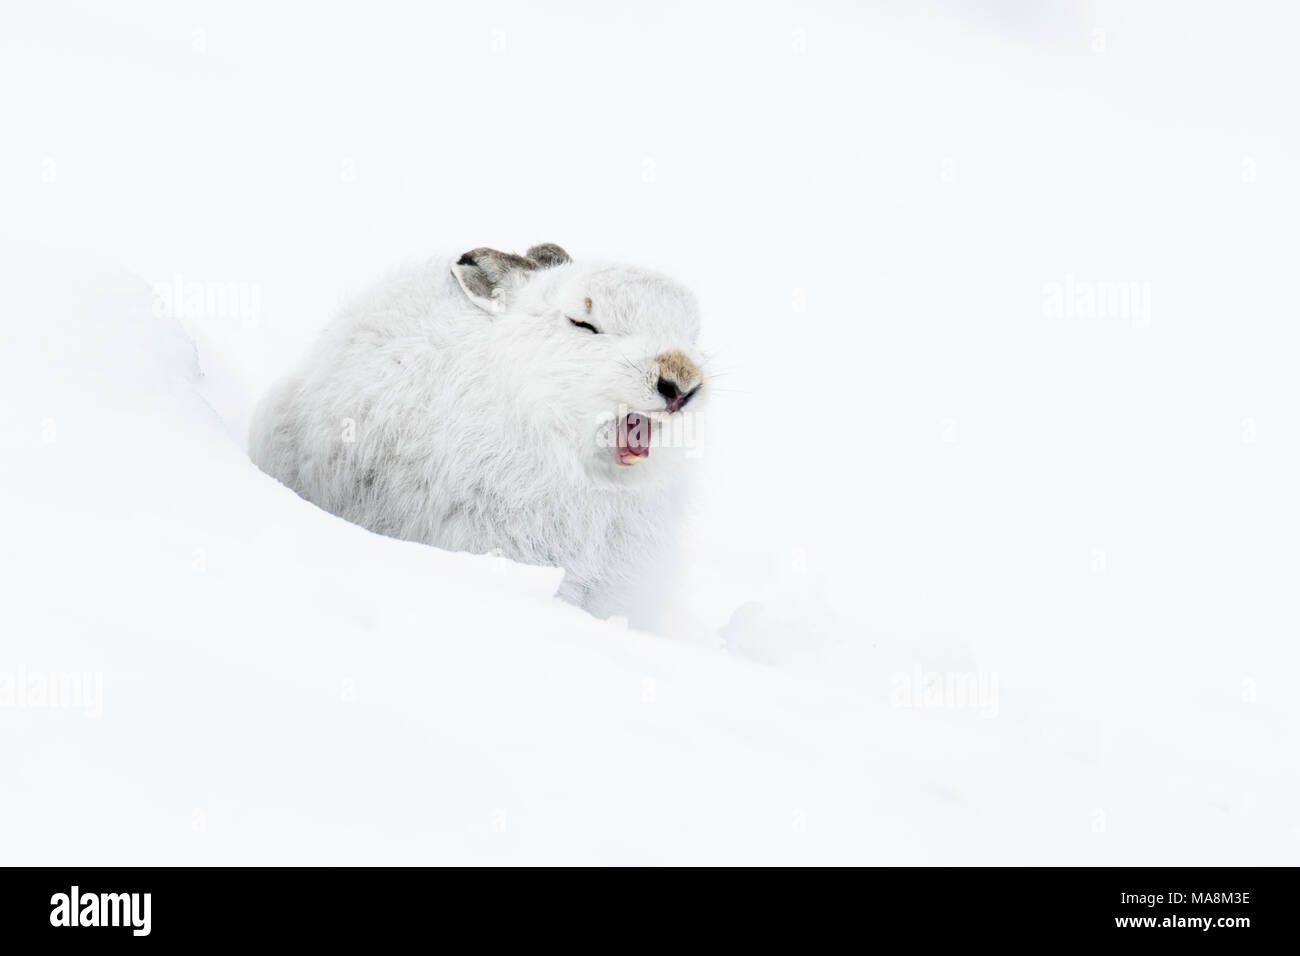 Mountain hare (lepus timidus) in winter pelage yawning on snow covered hillside in the Scottish Highlands - Stock Image